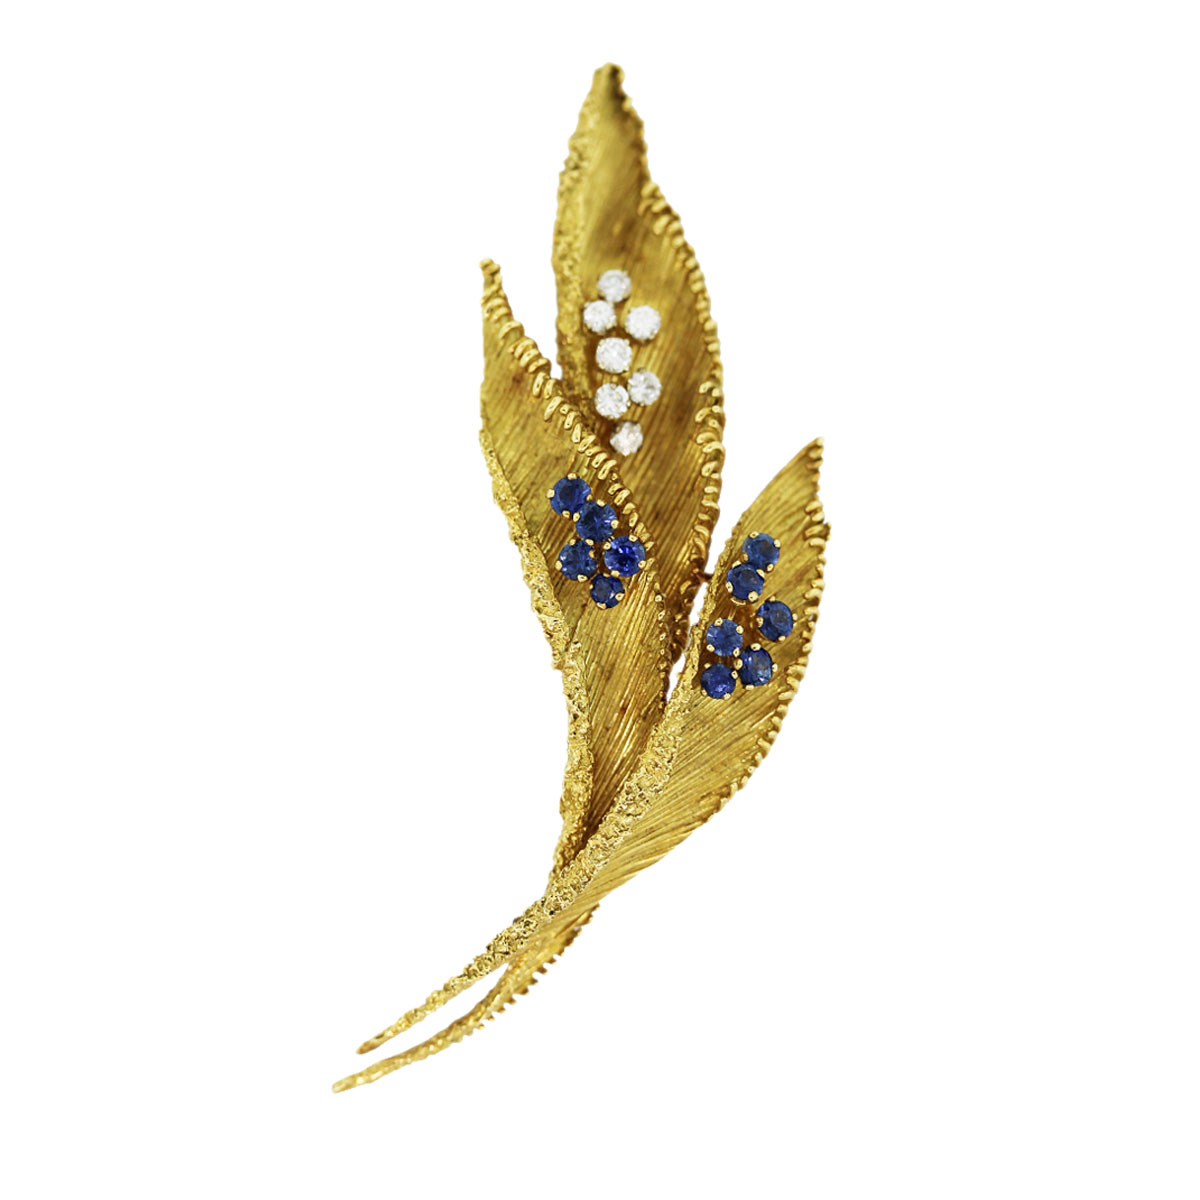 French Mad Diamond and Sapphire Pin